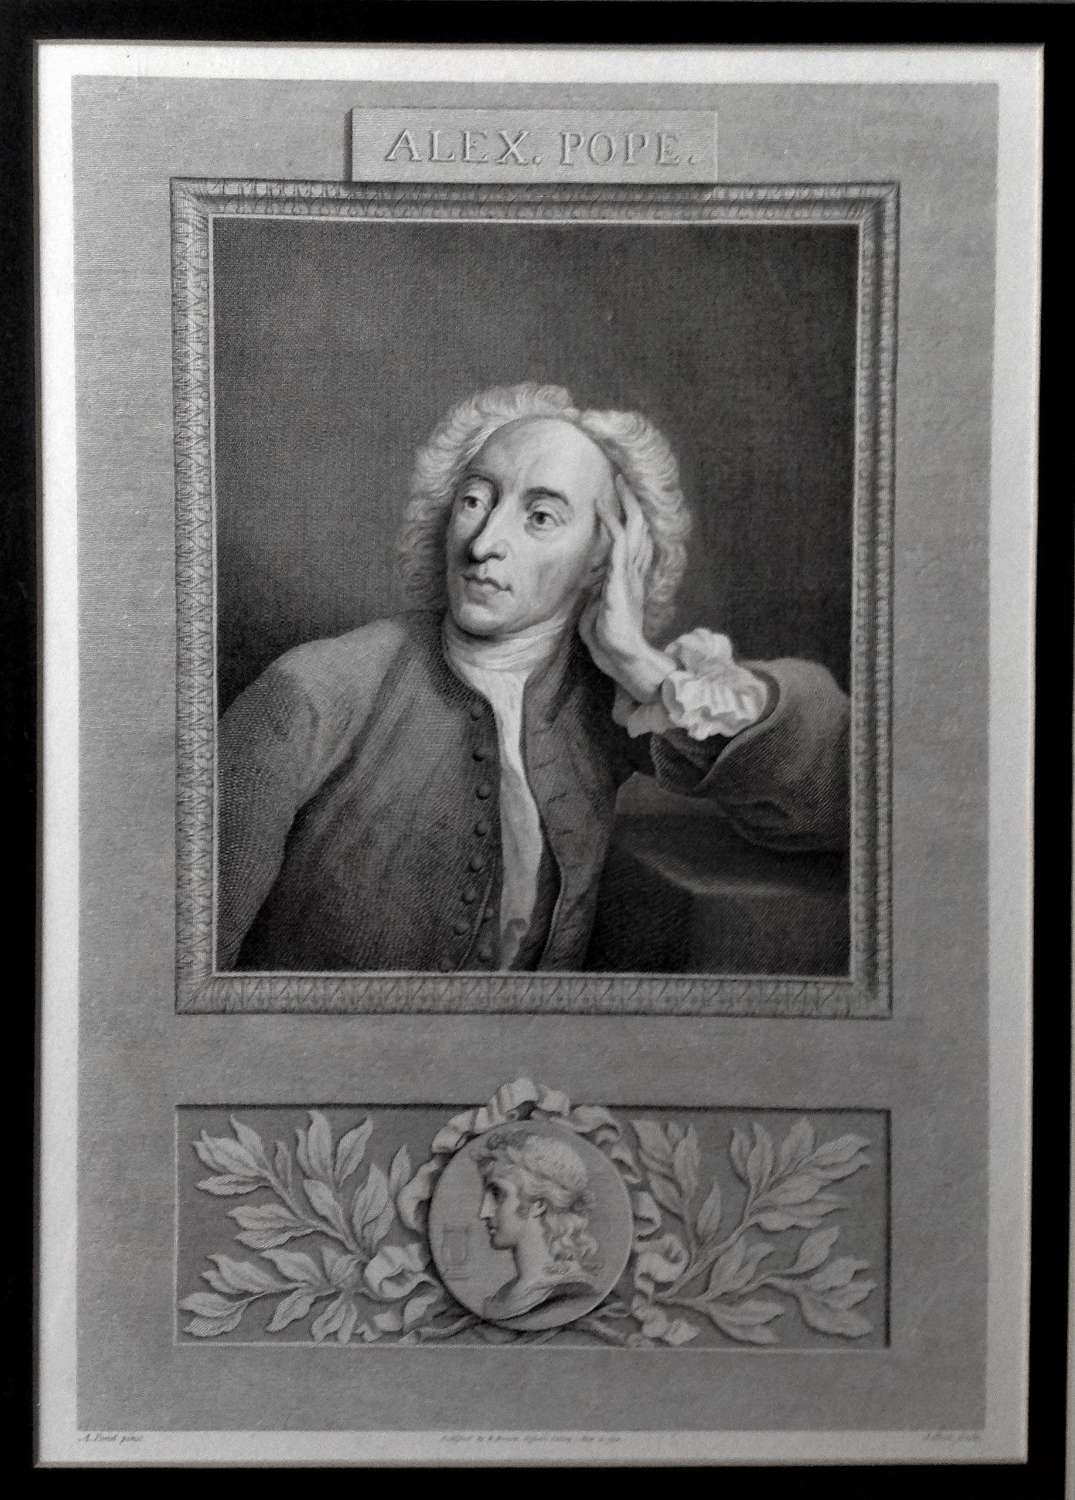 Alexander Pope (1688-1744), Engraved Portrait, 1794